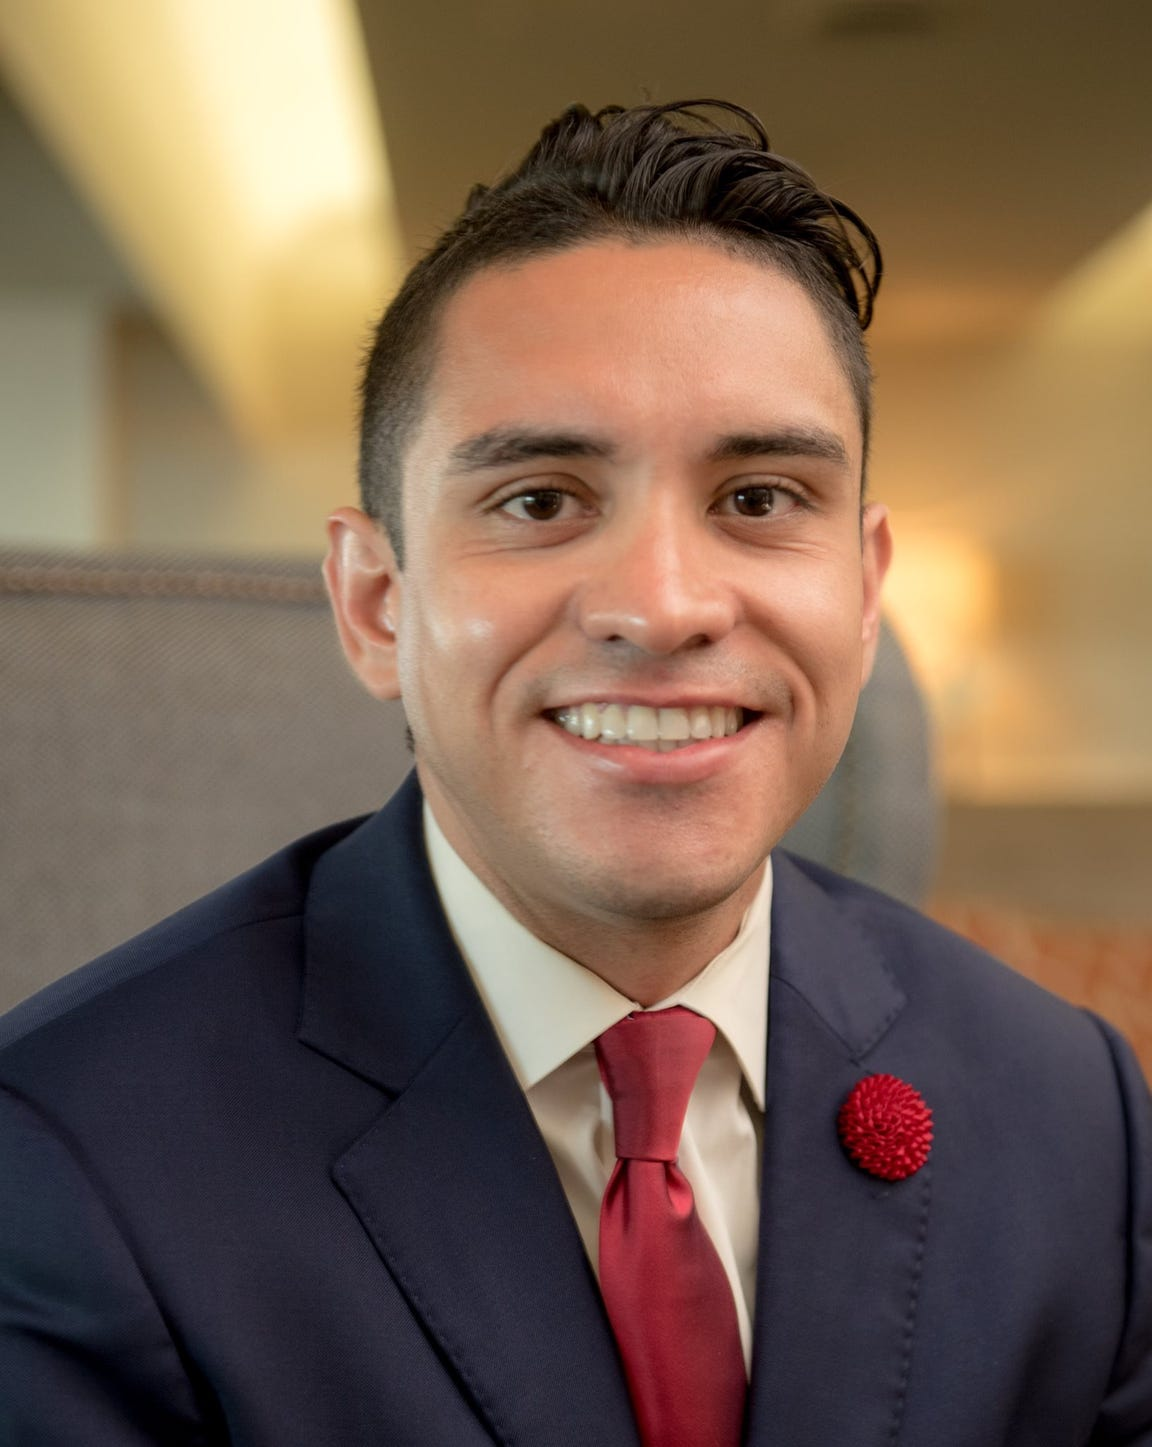 Corpus Christi City Council District 2 candidate RJ Torres